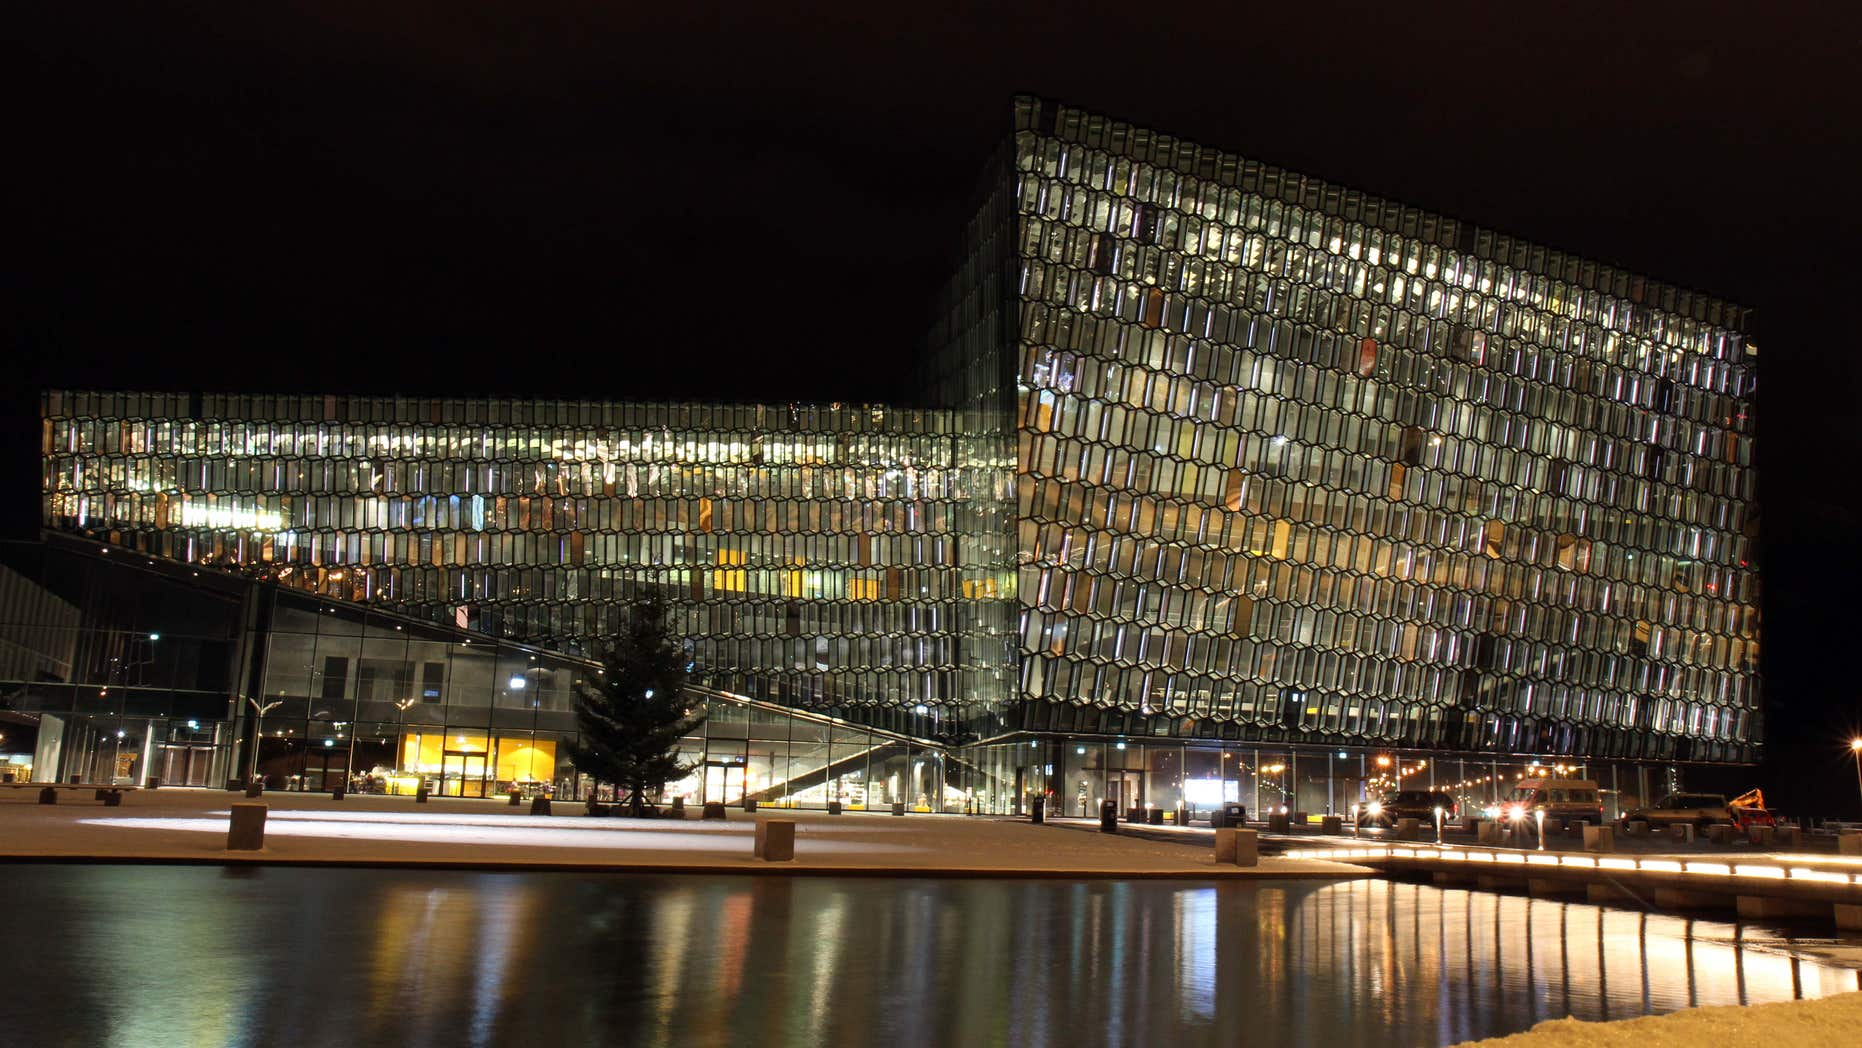 FILE - This Dec. 1, 2011, file photo shows an exterior night view of the Harpa concert hall and conference center in Reykjavik, Iceland.